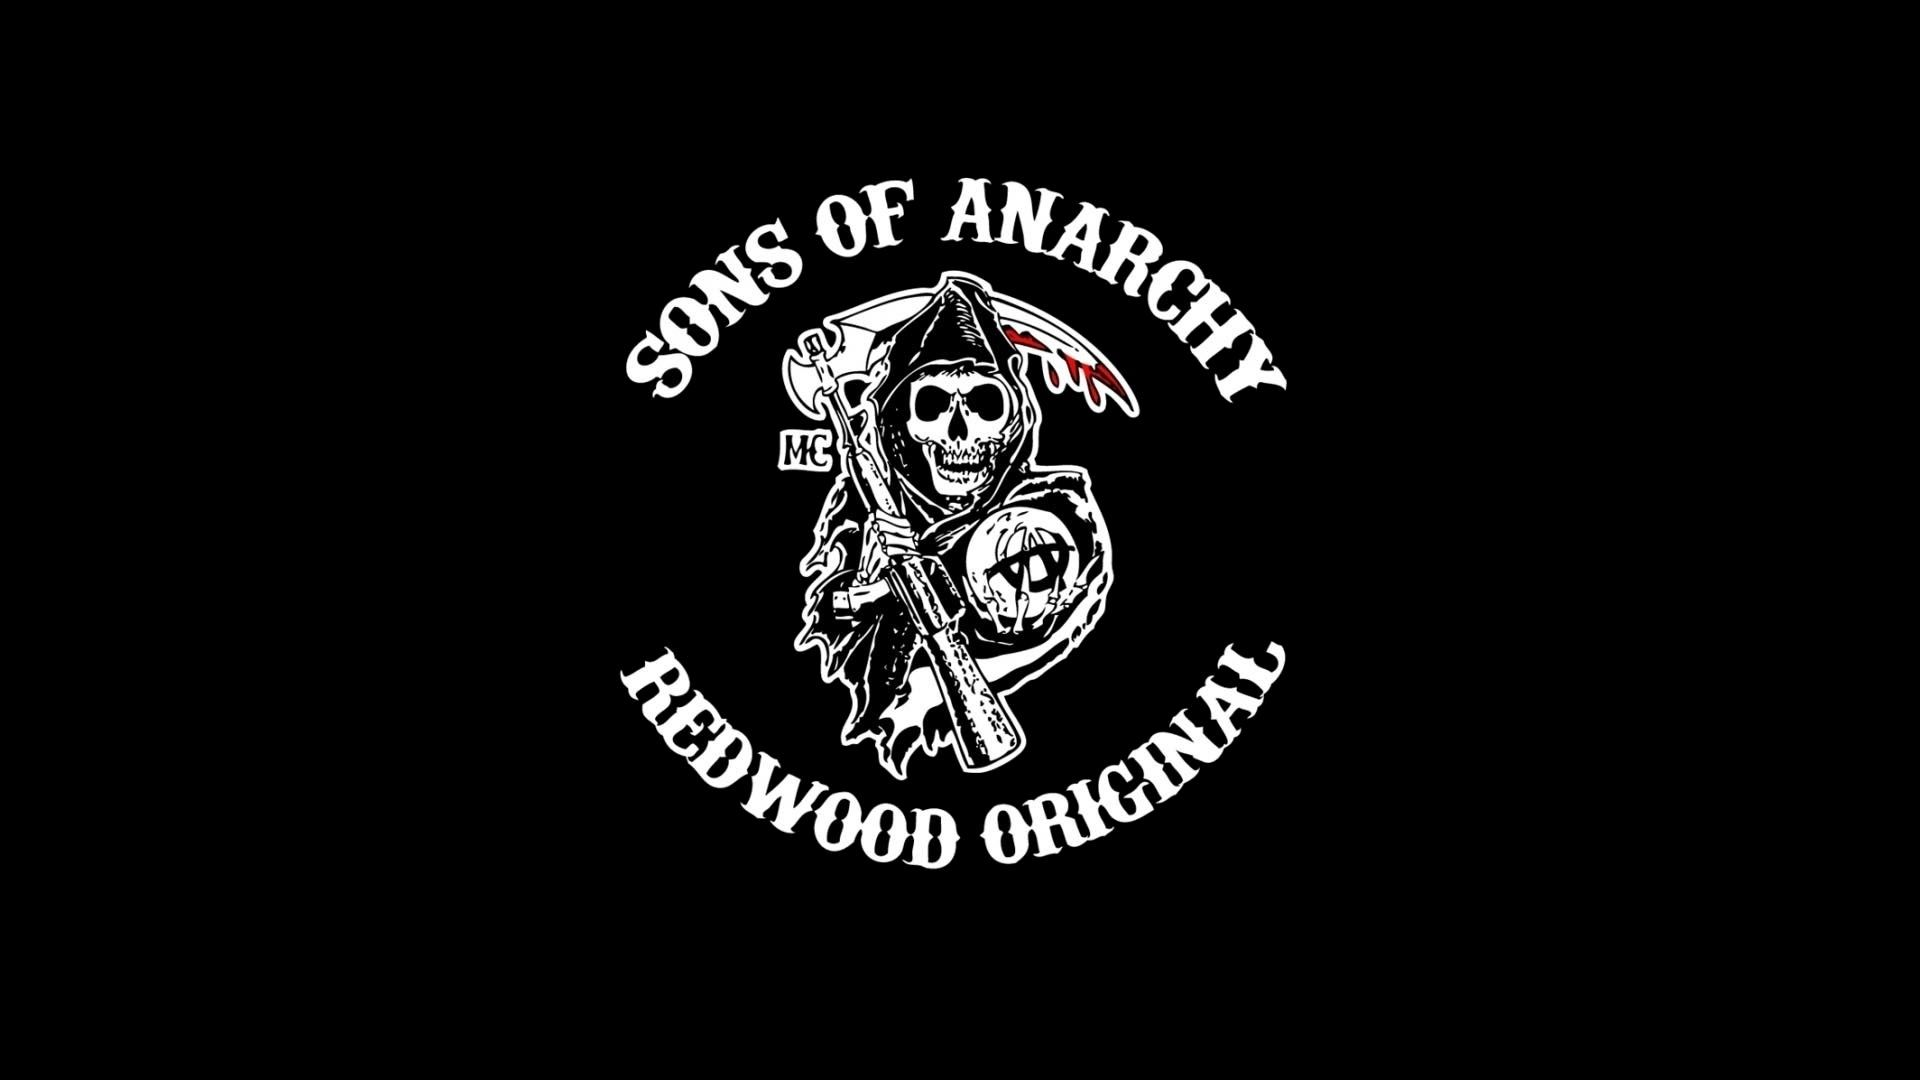 10 Top Sons Of Anarchy Wallpaper Hd Full Hd 1080p For Pc Background Sons Of Anarchy Anarchy Sons